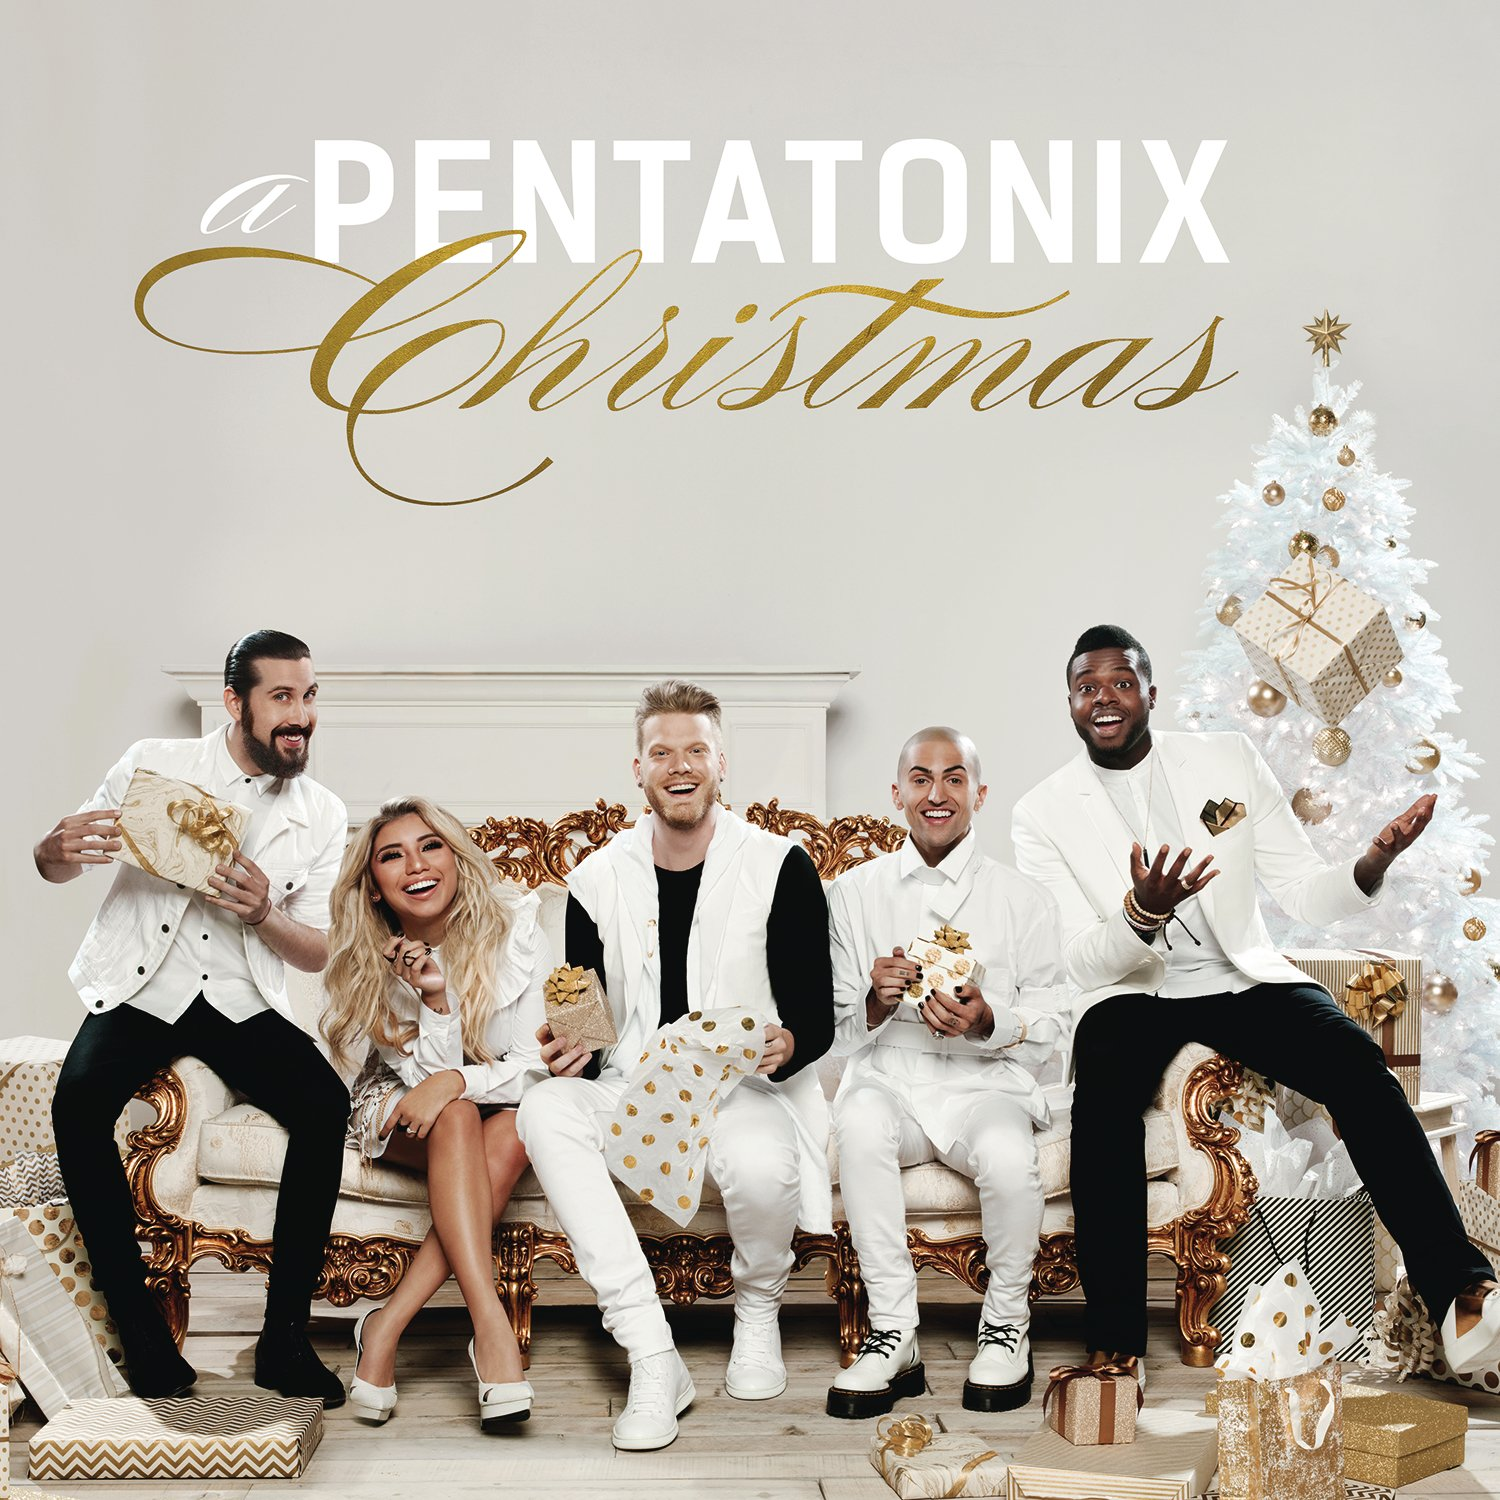 Pentatonix - A Pentatonix Christmas - Amazon.com Music